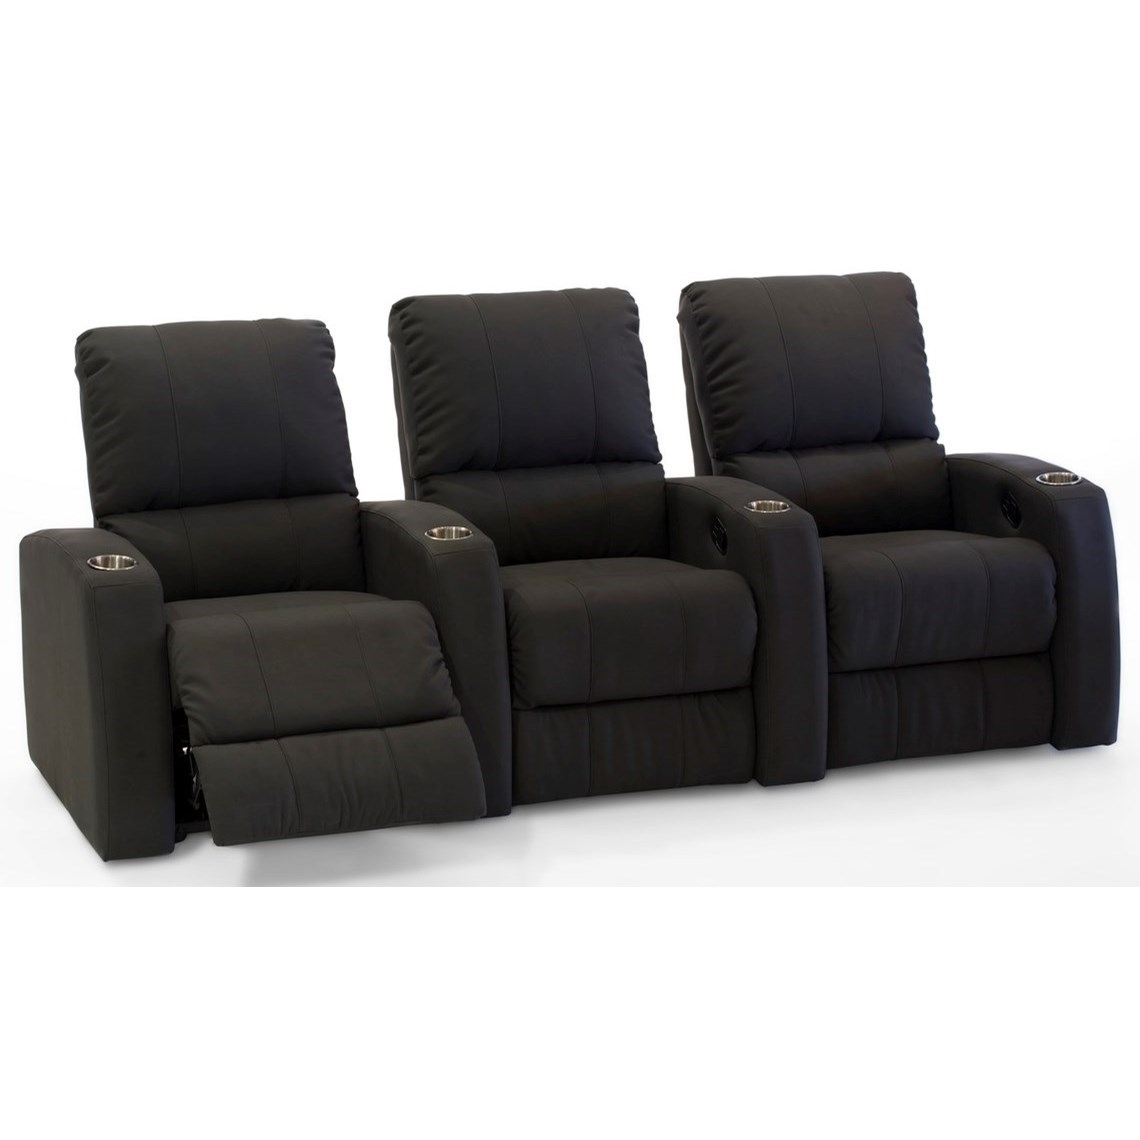 3-Seat Power Reclining Theater Seating